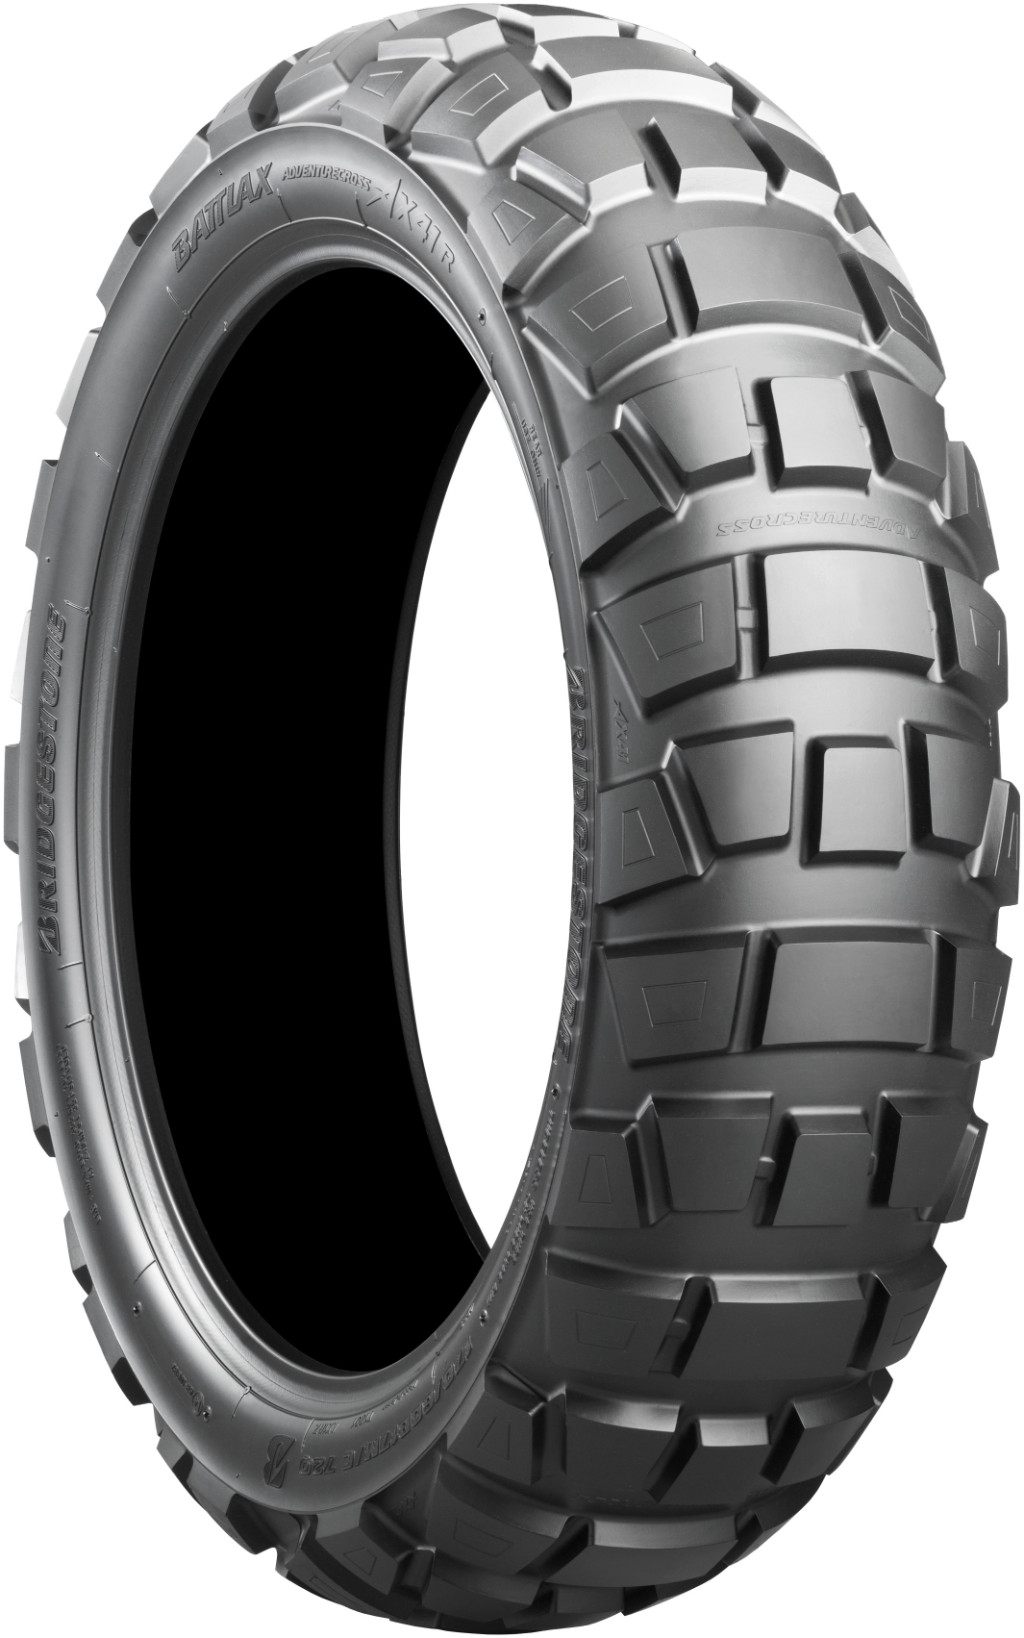 BRIDGESTONE BATTLAX ADVENTURECROSS AX41 [130/80B 17M/C 65Q] Tire